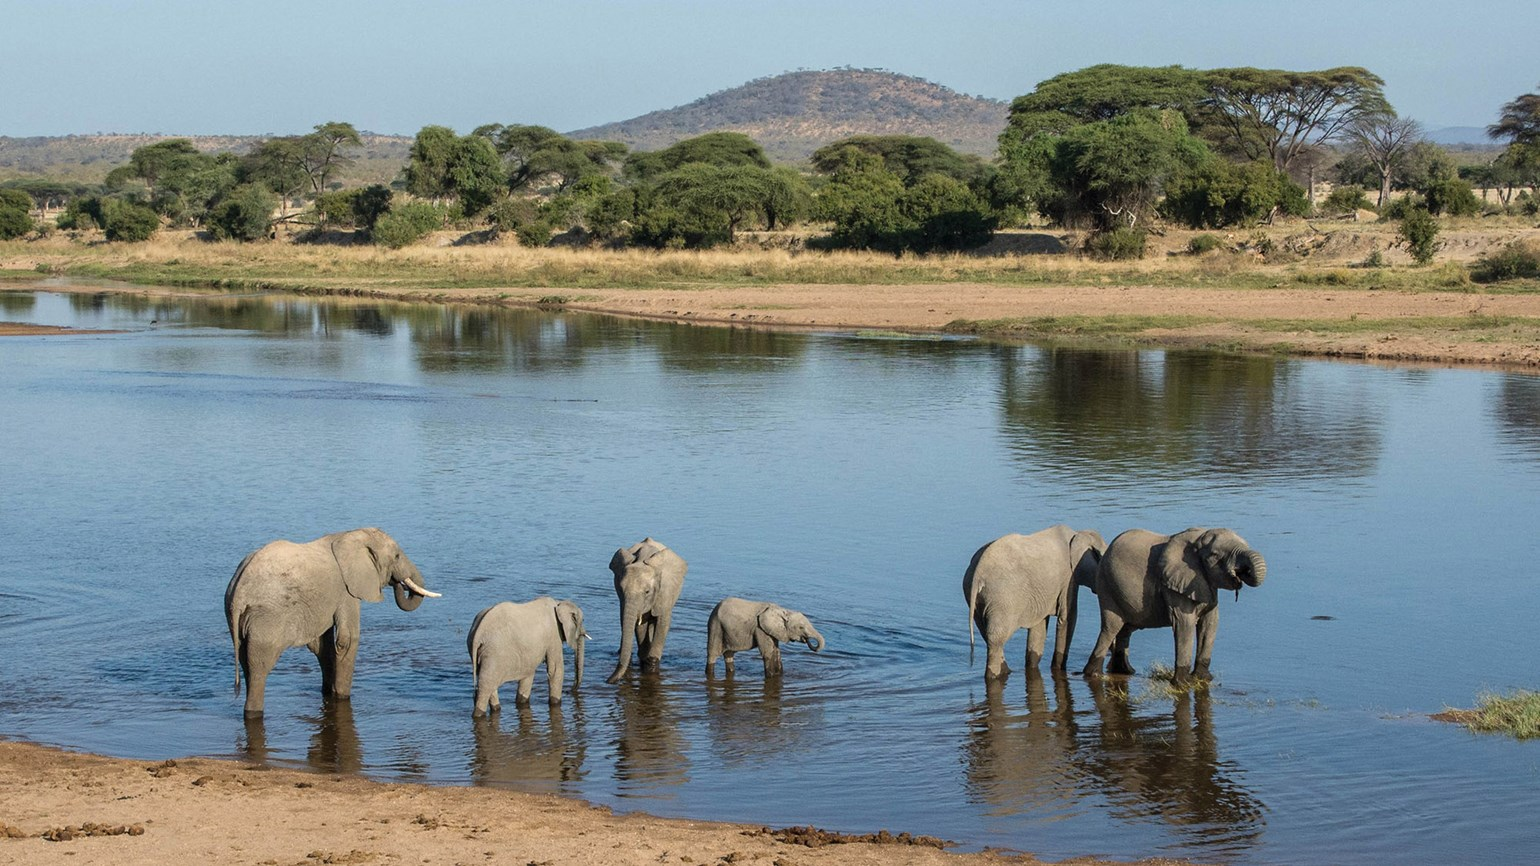 Discovering an overlooked gem in Tanzania